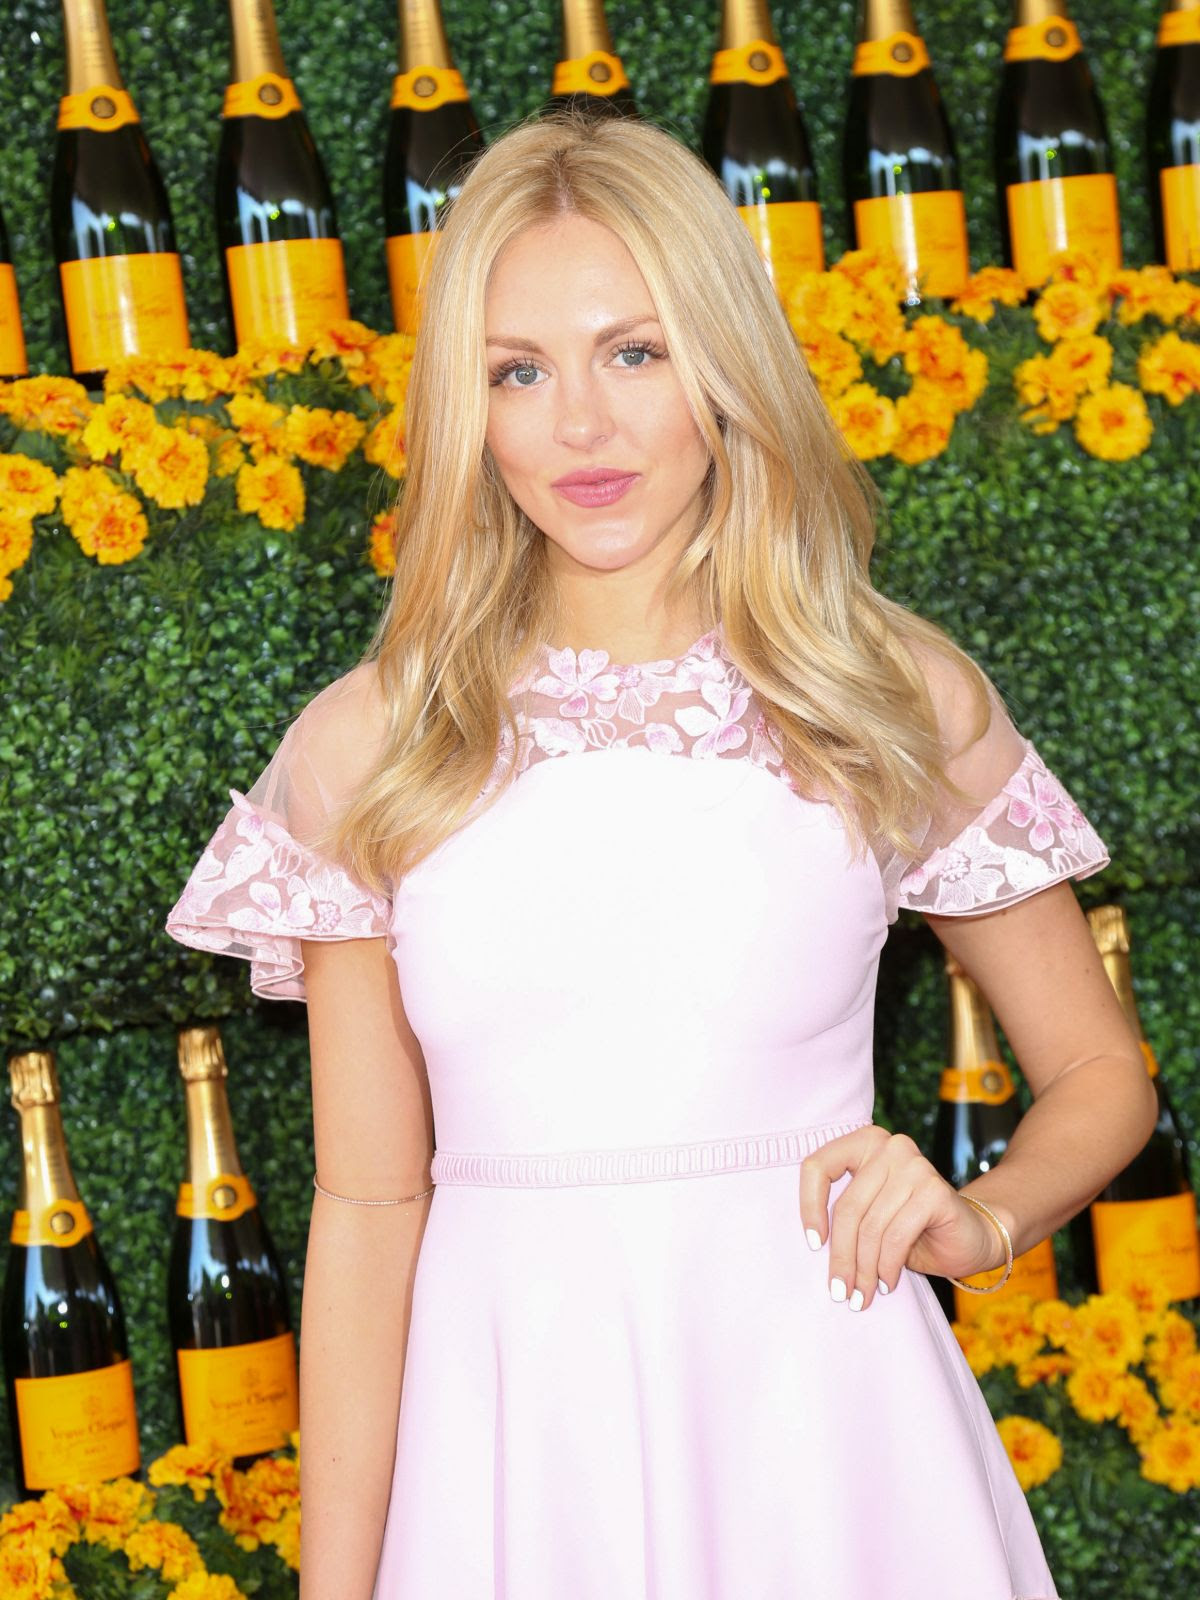 SHEA MARIE at 2015 Veuve Clicquot Polo Classic in Pacific Palisades 10/17/2015